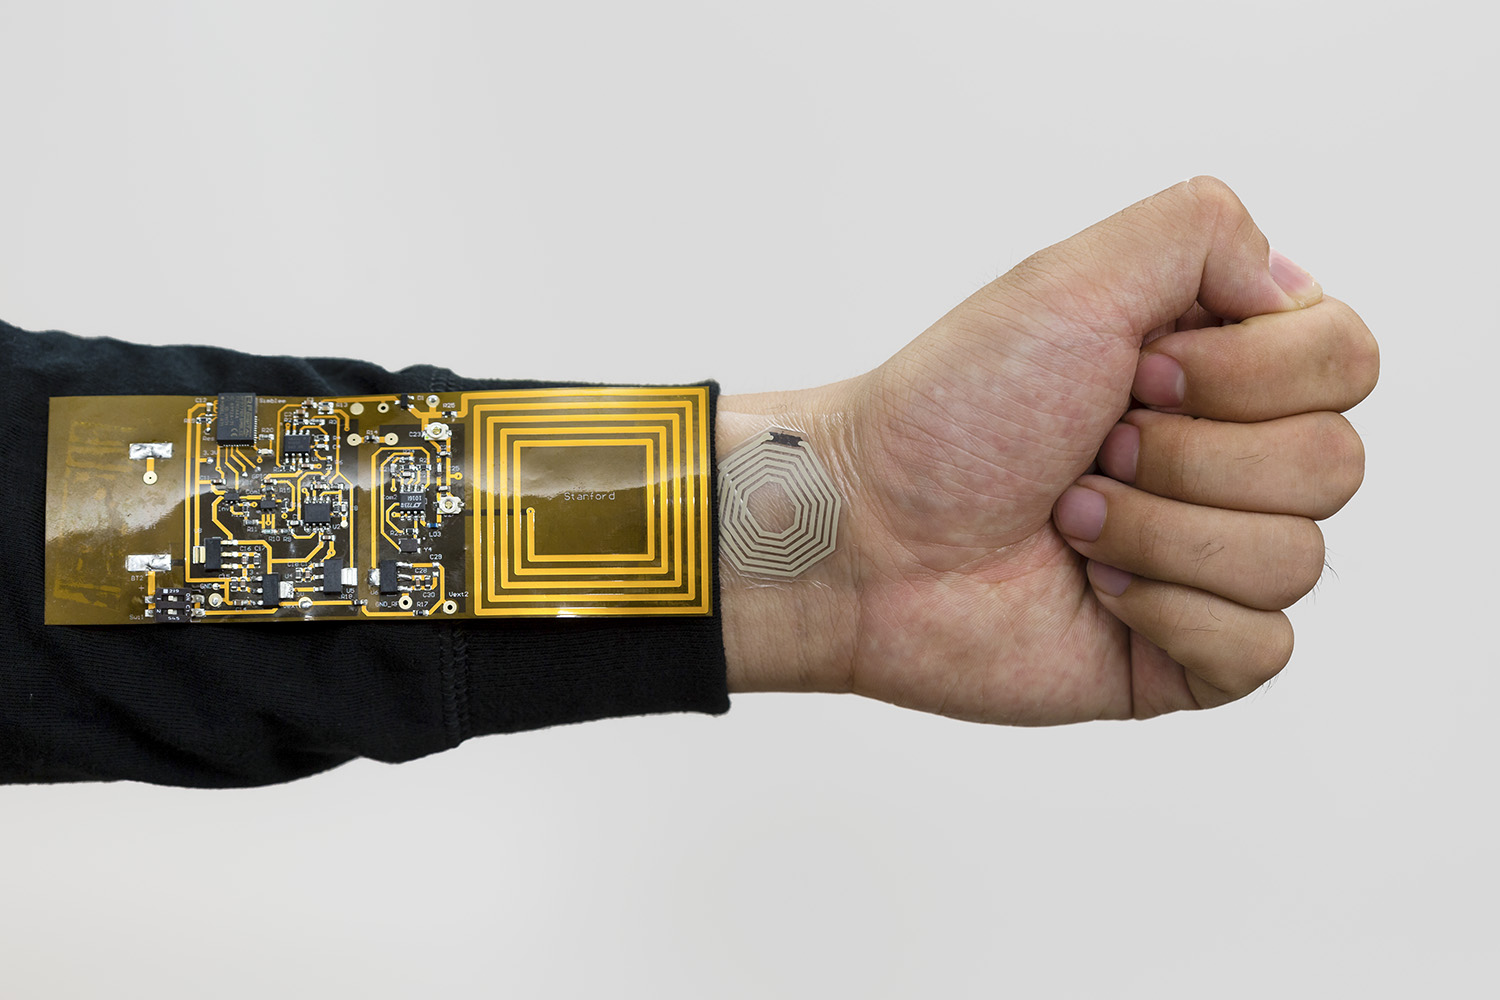 Flexible stick-on sensors could wirelessly monitor your sweat and pulse